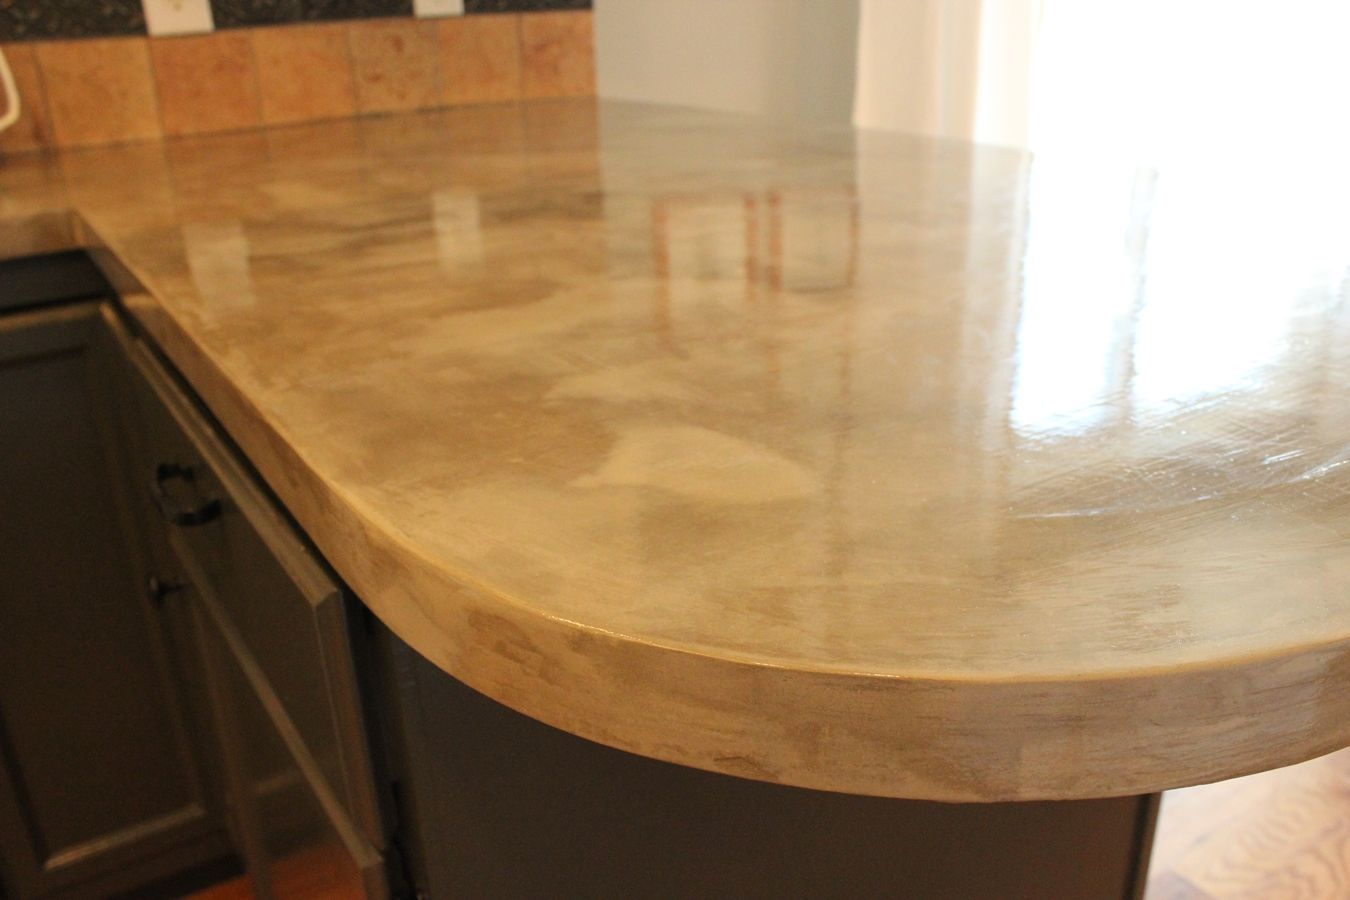 Diy concrete kitchen countertops a step by step tutorial for How to make designs in concrete